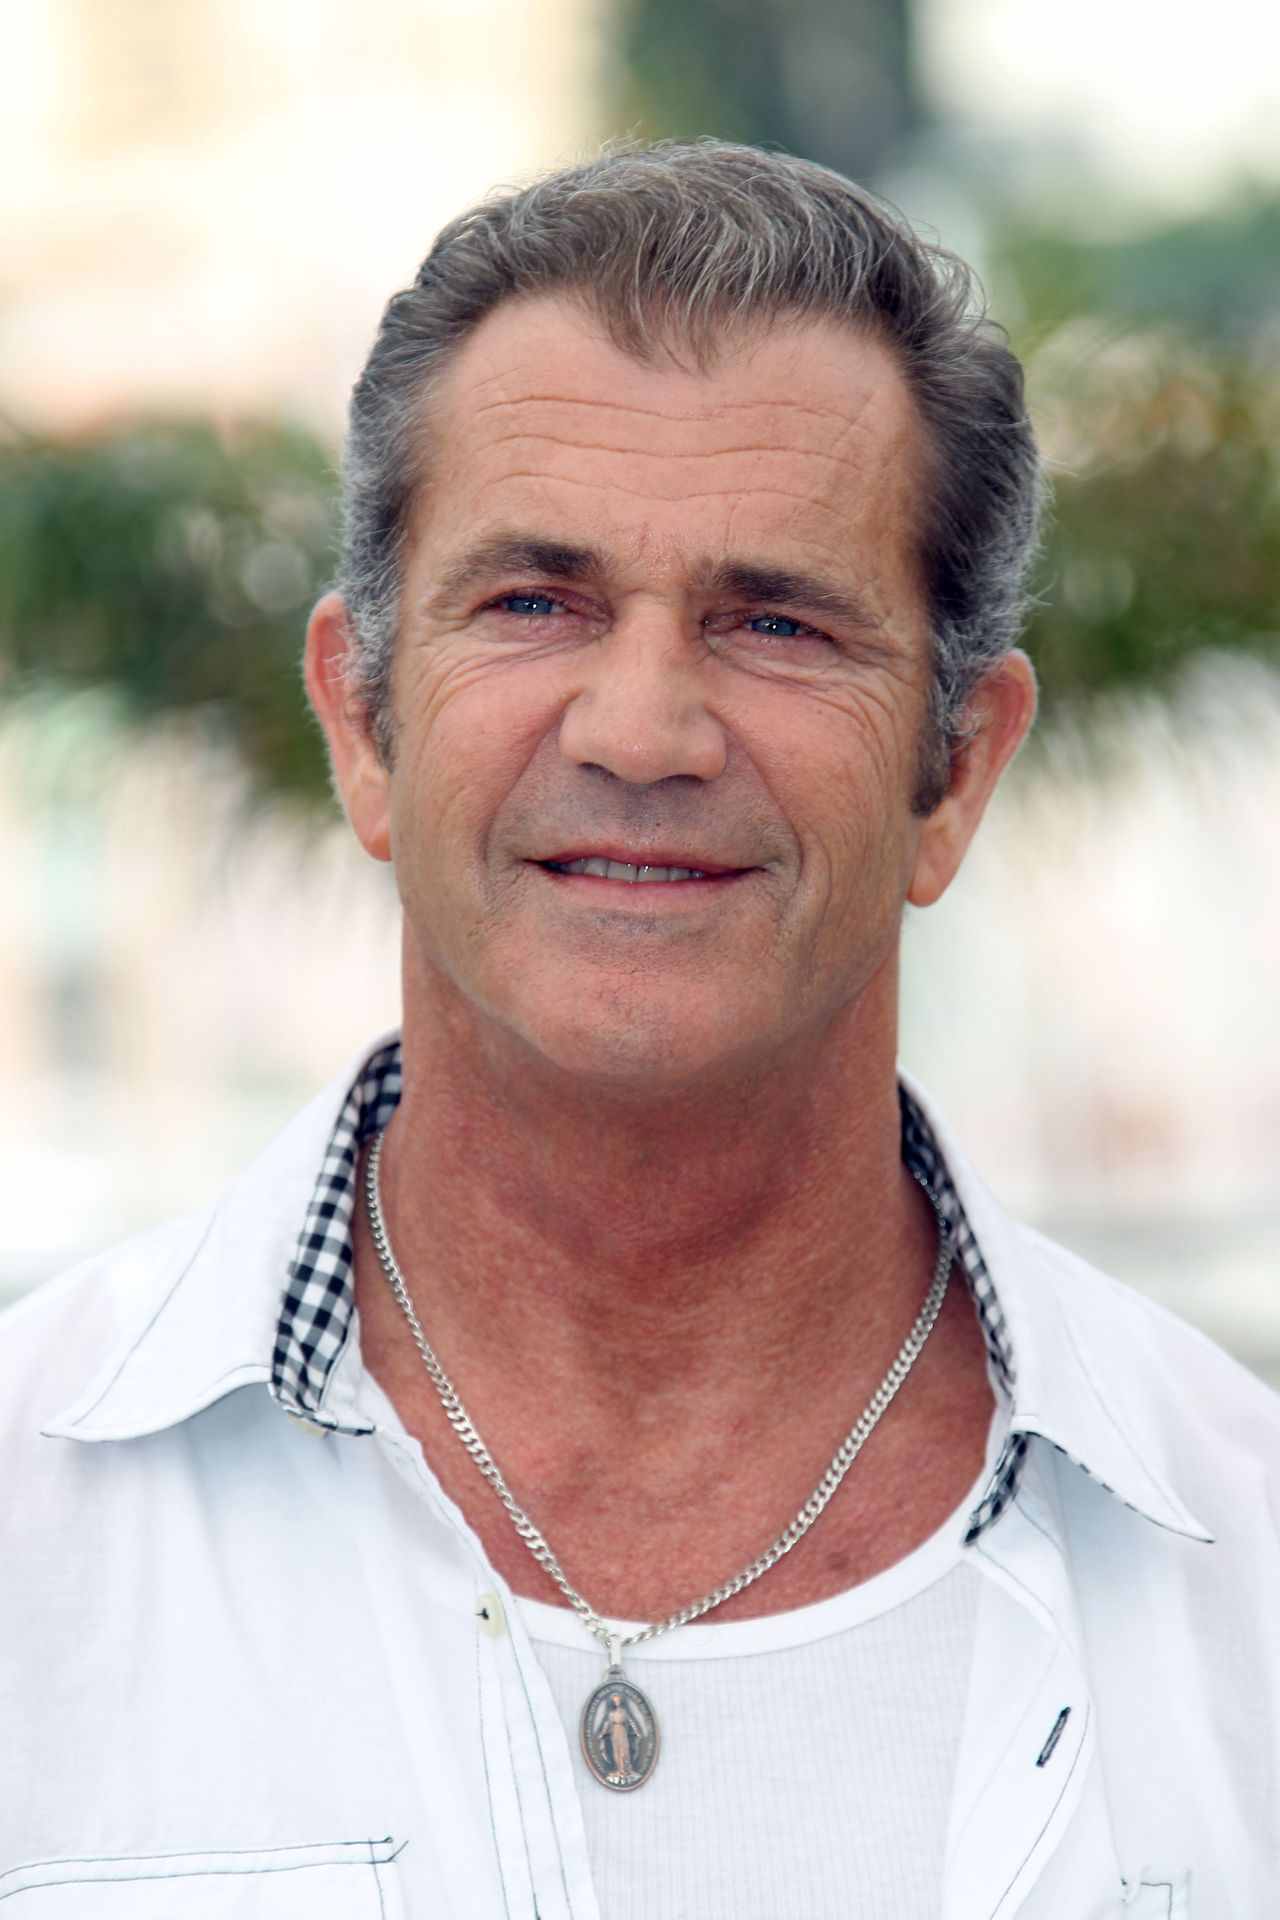 "(FILES)US actor Mel Gibson poses during the photocall of ""The Beaver"" presented out of competiton at the 64th Cannes Film Festival in this May 18, 2011 file photo in Cannes. Oscar-winning director Mel Gibson was embroiled in a fresh anti-Semitism row April 12, 2012 after he was accused of shelving a movie about a famous Jewish revolt because he ""hates Jews."" The allegations from Hollywood screenwriter Joe Eszterhas came after studio Warner Bros announced it was putting on hold ""The Maccabees,"" which Gibson had been penciled in to direct, because the film ""lacked a sense of triumph."" But Eszterhas, best known for writing the thrillers Jagged Edge and Basic Instinct, let rip at Gibson in a nine-page letter which accused the ""Braveheart"" star of pulling out because of alleged anti-Semitism. AFP PHOTO / VALERY HACHE"